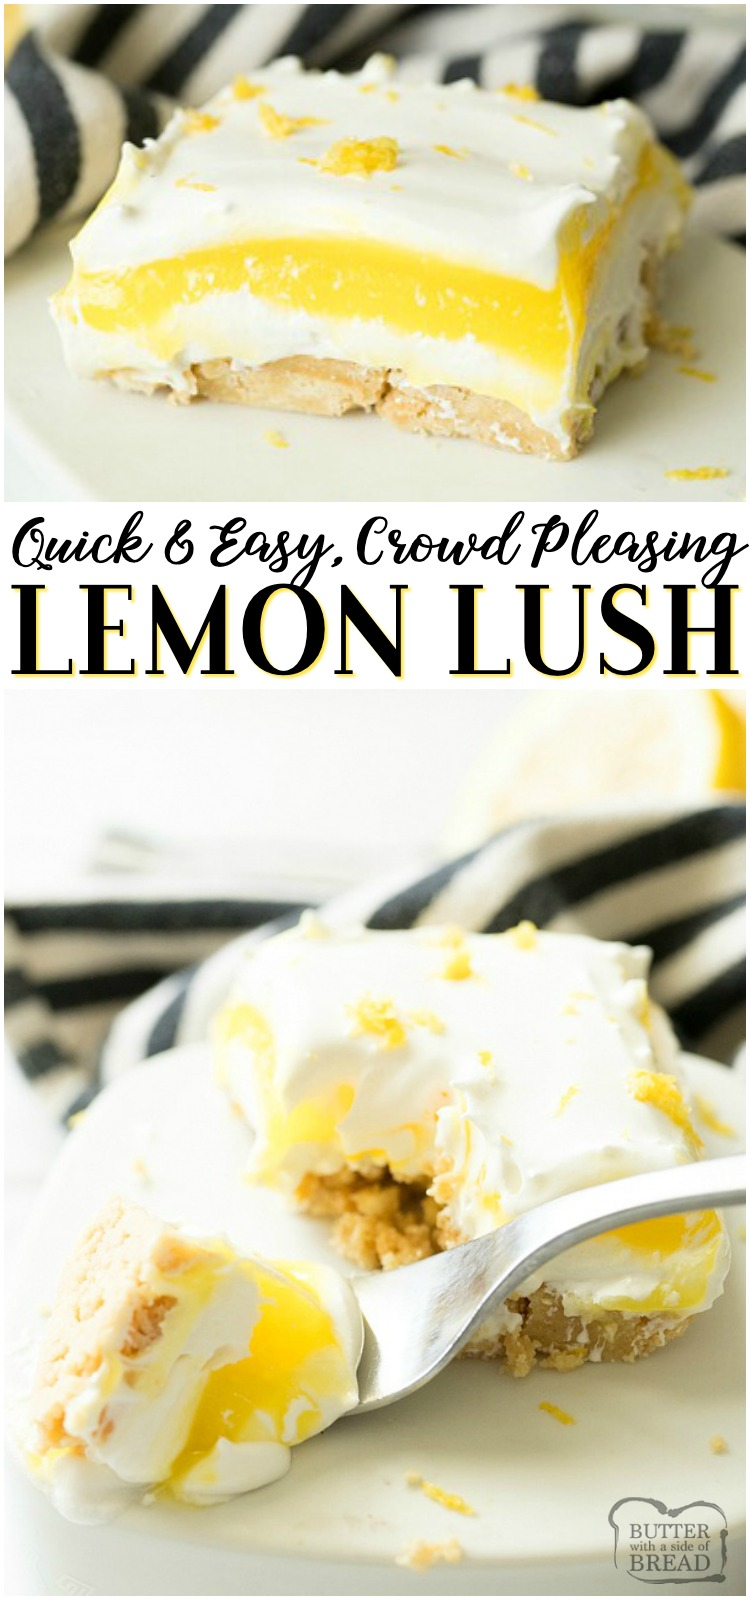 Lemon Lush Dessert made from lemon pudding mix, cream cheese, whipped topping and golden Oreos. Easy to make no-bake lemon lush dessert perfect for summer get togethers! #lemon #lemonlush #dessert #nobake #recipe from BUTTER WITH A SIDE OF BREAD